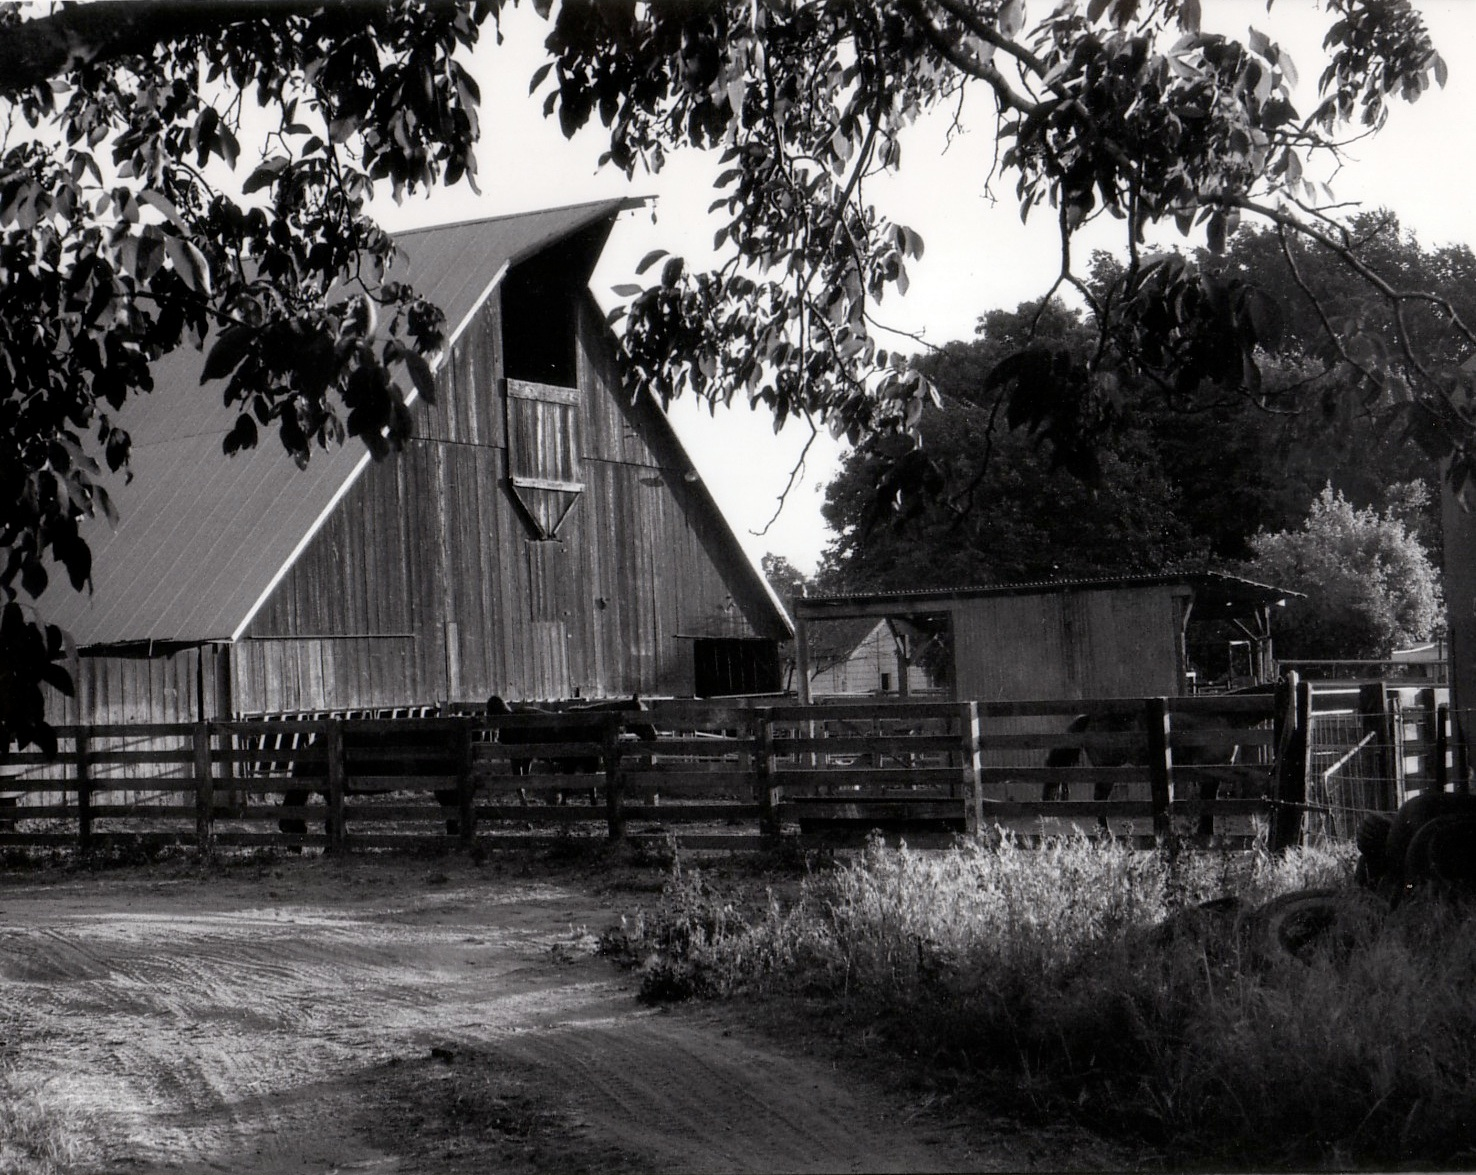 Closeup Barn in Black and White